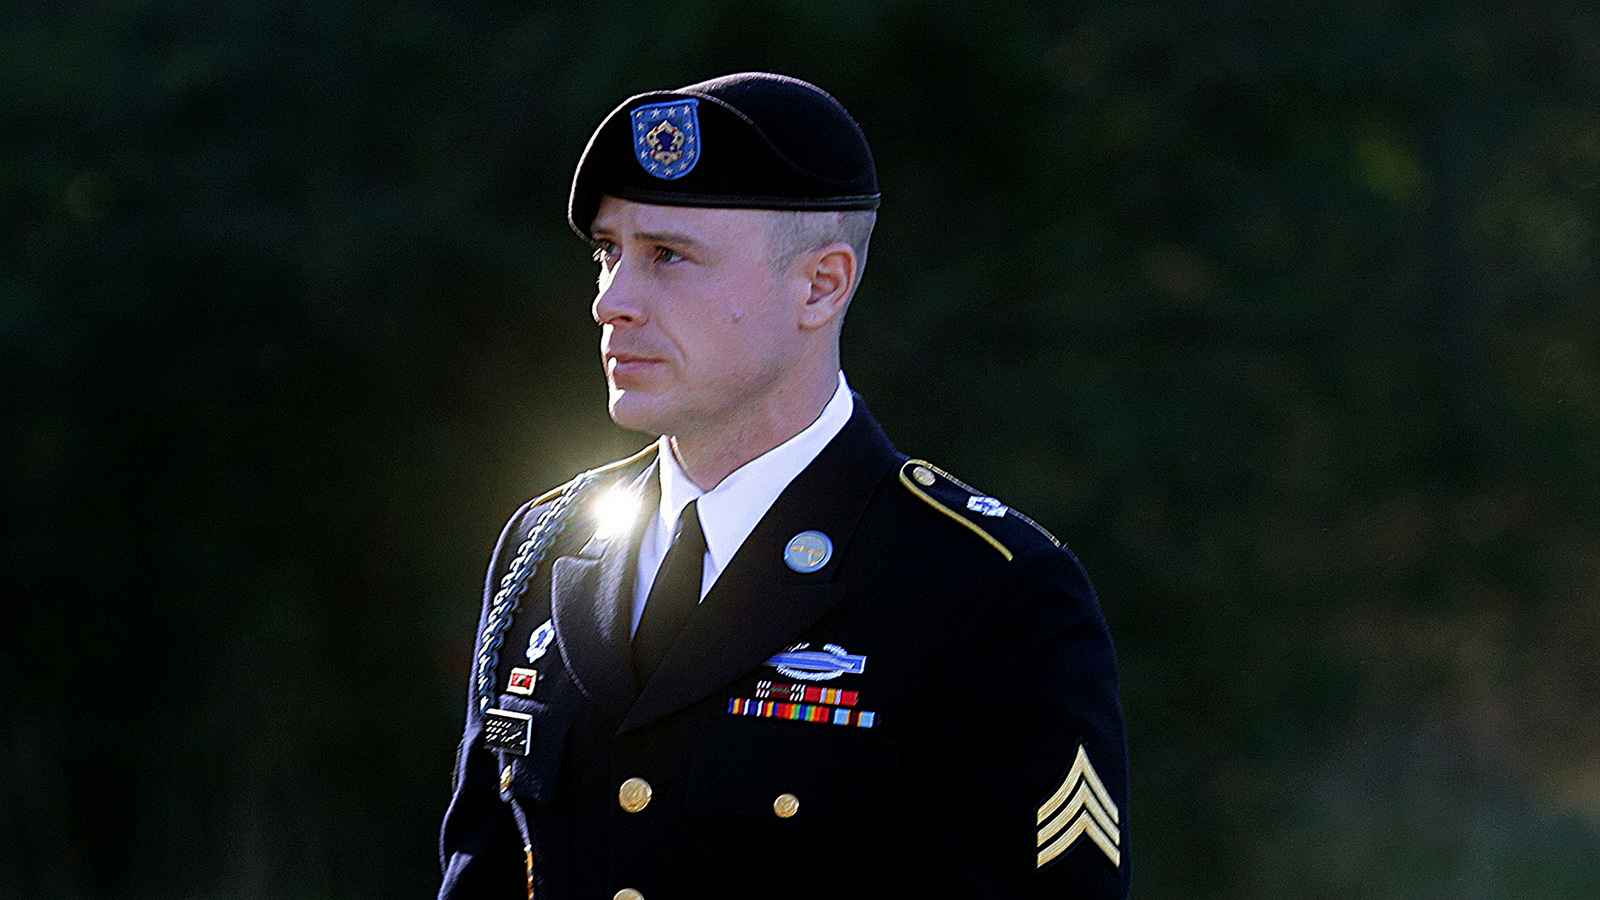 Why The Vengeance Toward Sgt. Bowe Bergdahl